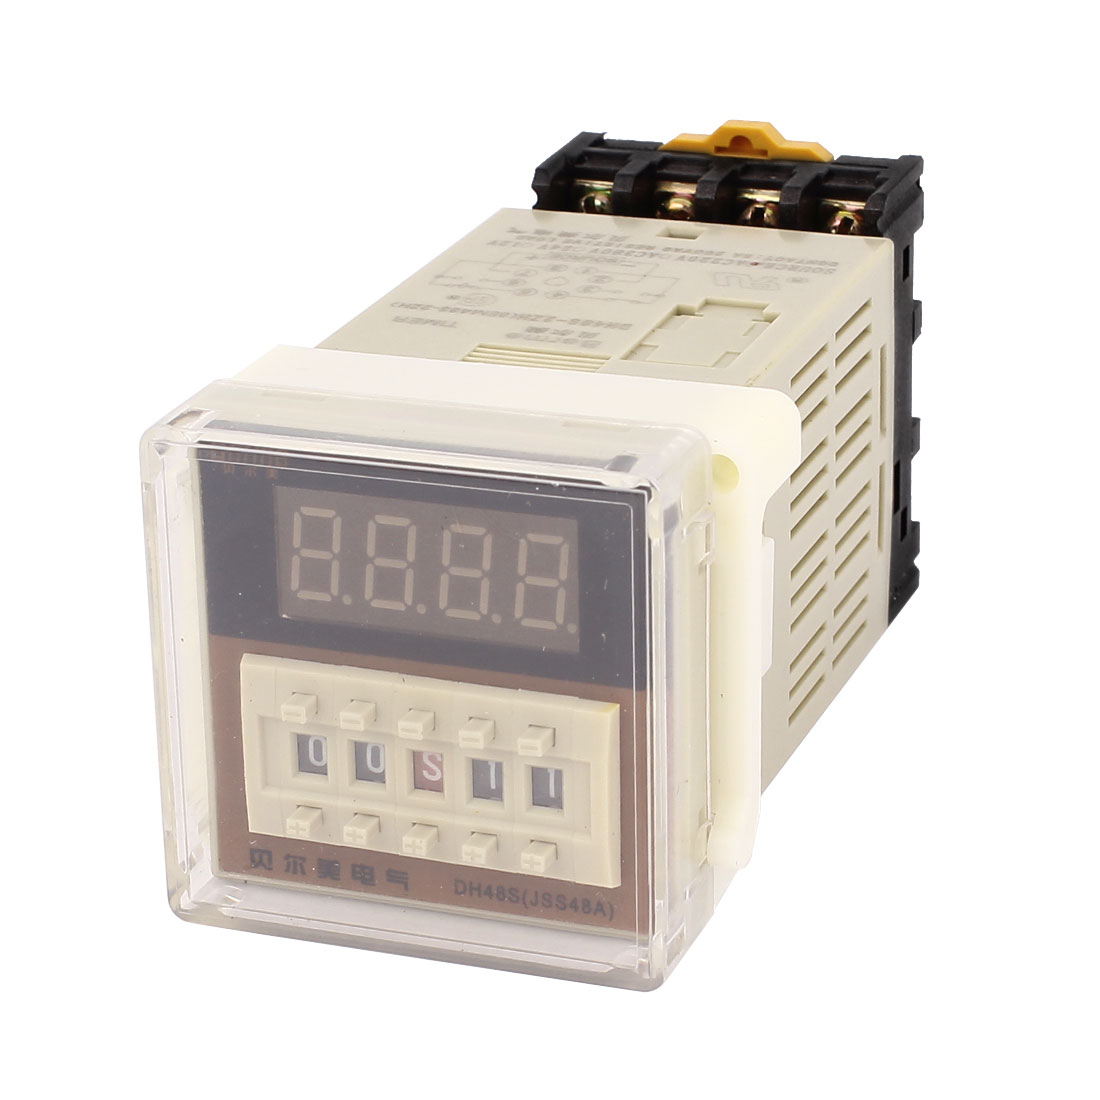 Dh48s-2Zh 0.01S-99H99m Ac220v Din Rail Lcd Digital Timer Time Delay Relay W Base цена